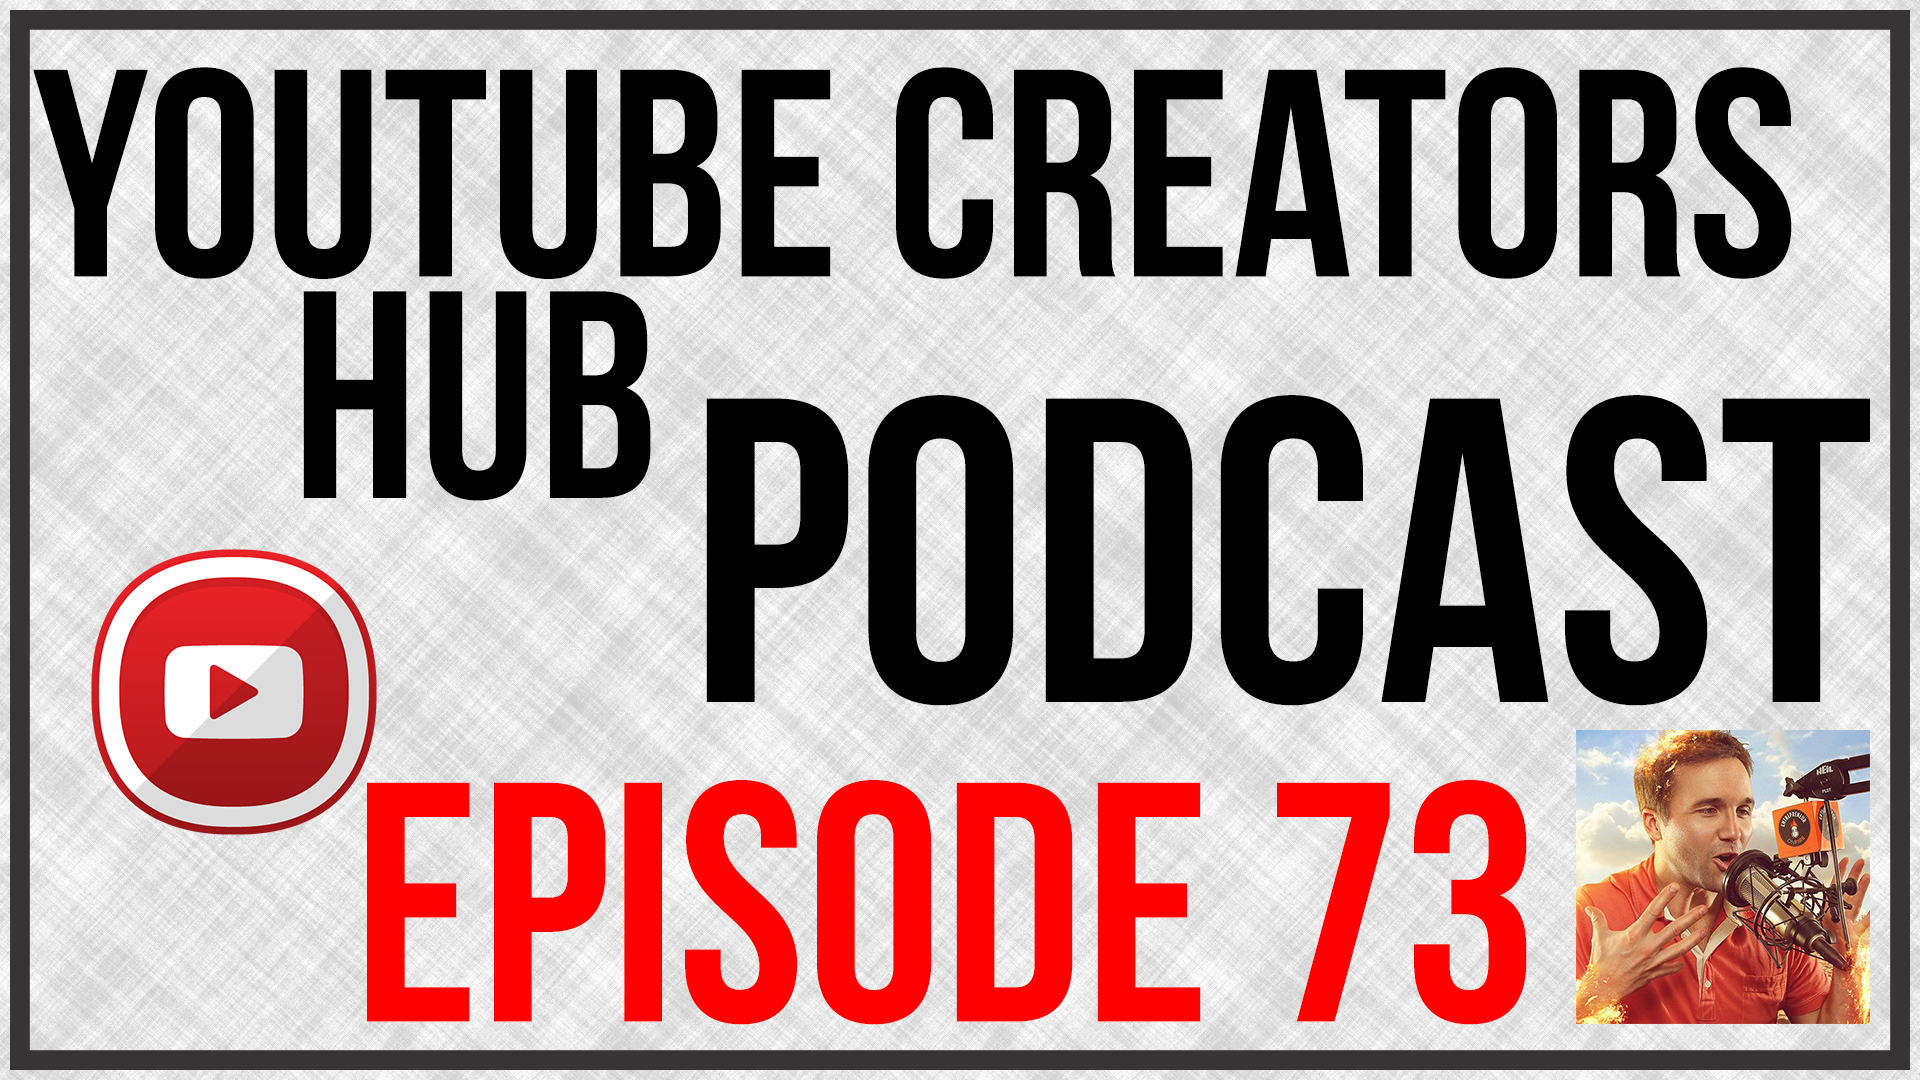 YouTube Creators Hub Podcast Episode 73